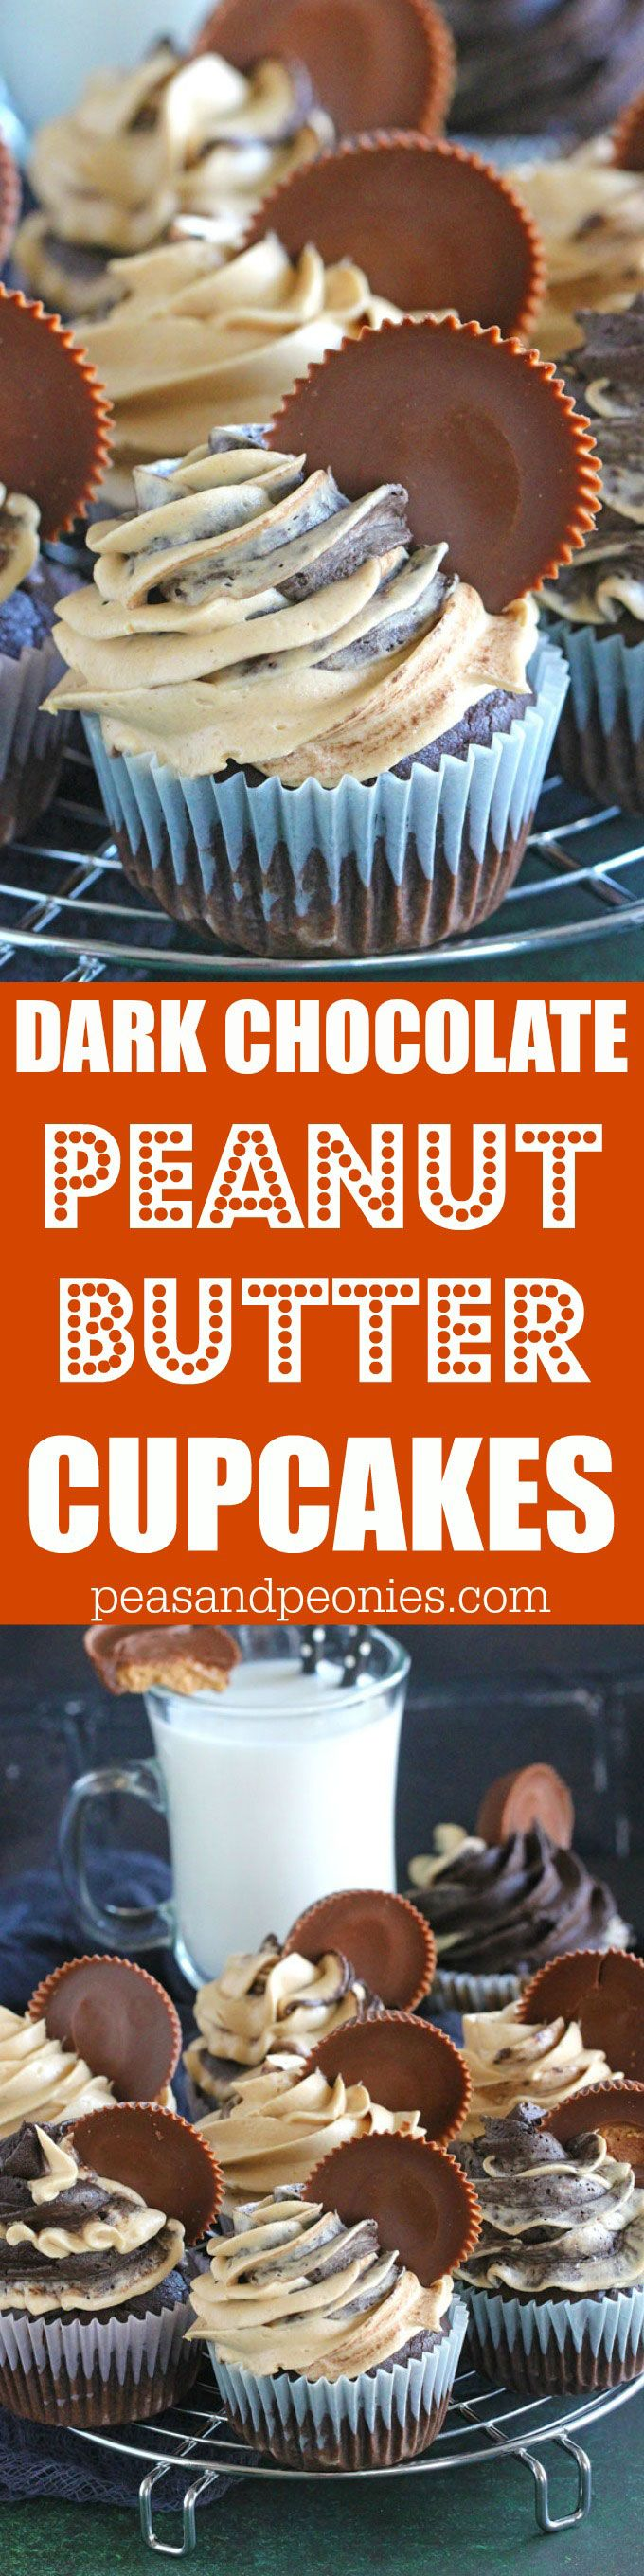 Dark Chocolate Peanut Butter Cupcakes are to die for, a rich dark chocolate peanut butter cupcake is topped with sweet peanut butter buttercream and peanut butter cup.